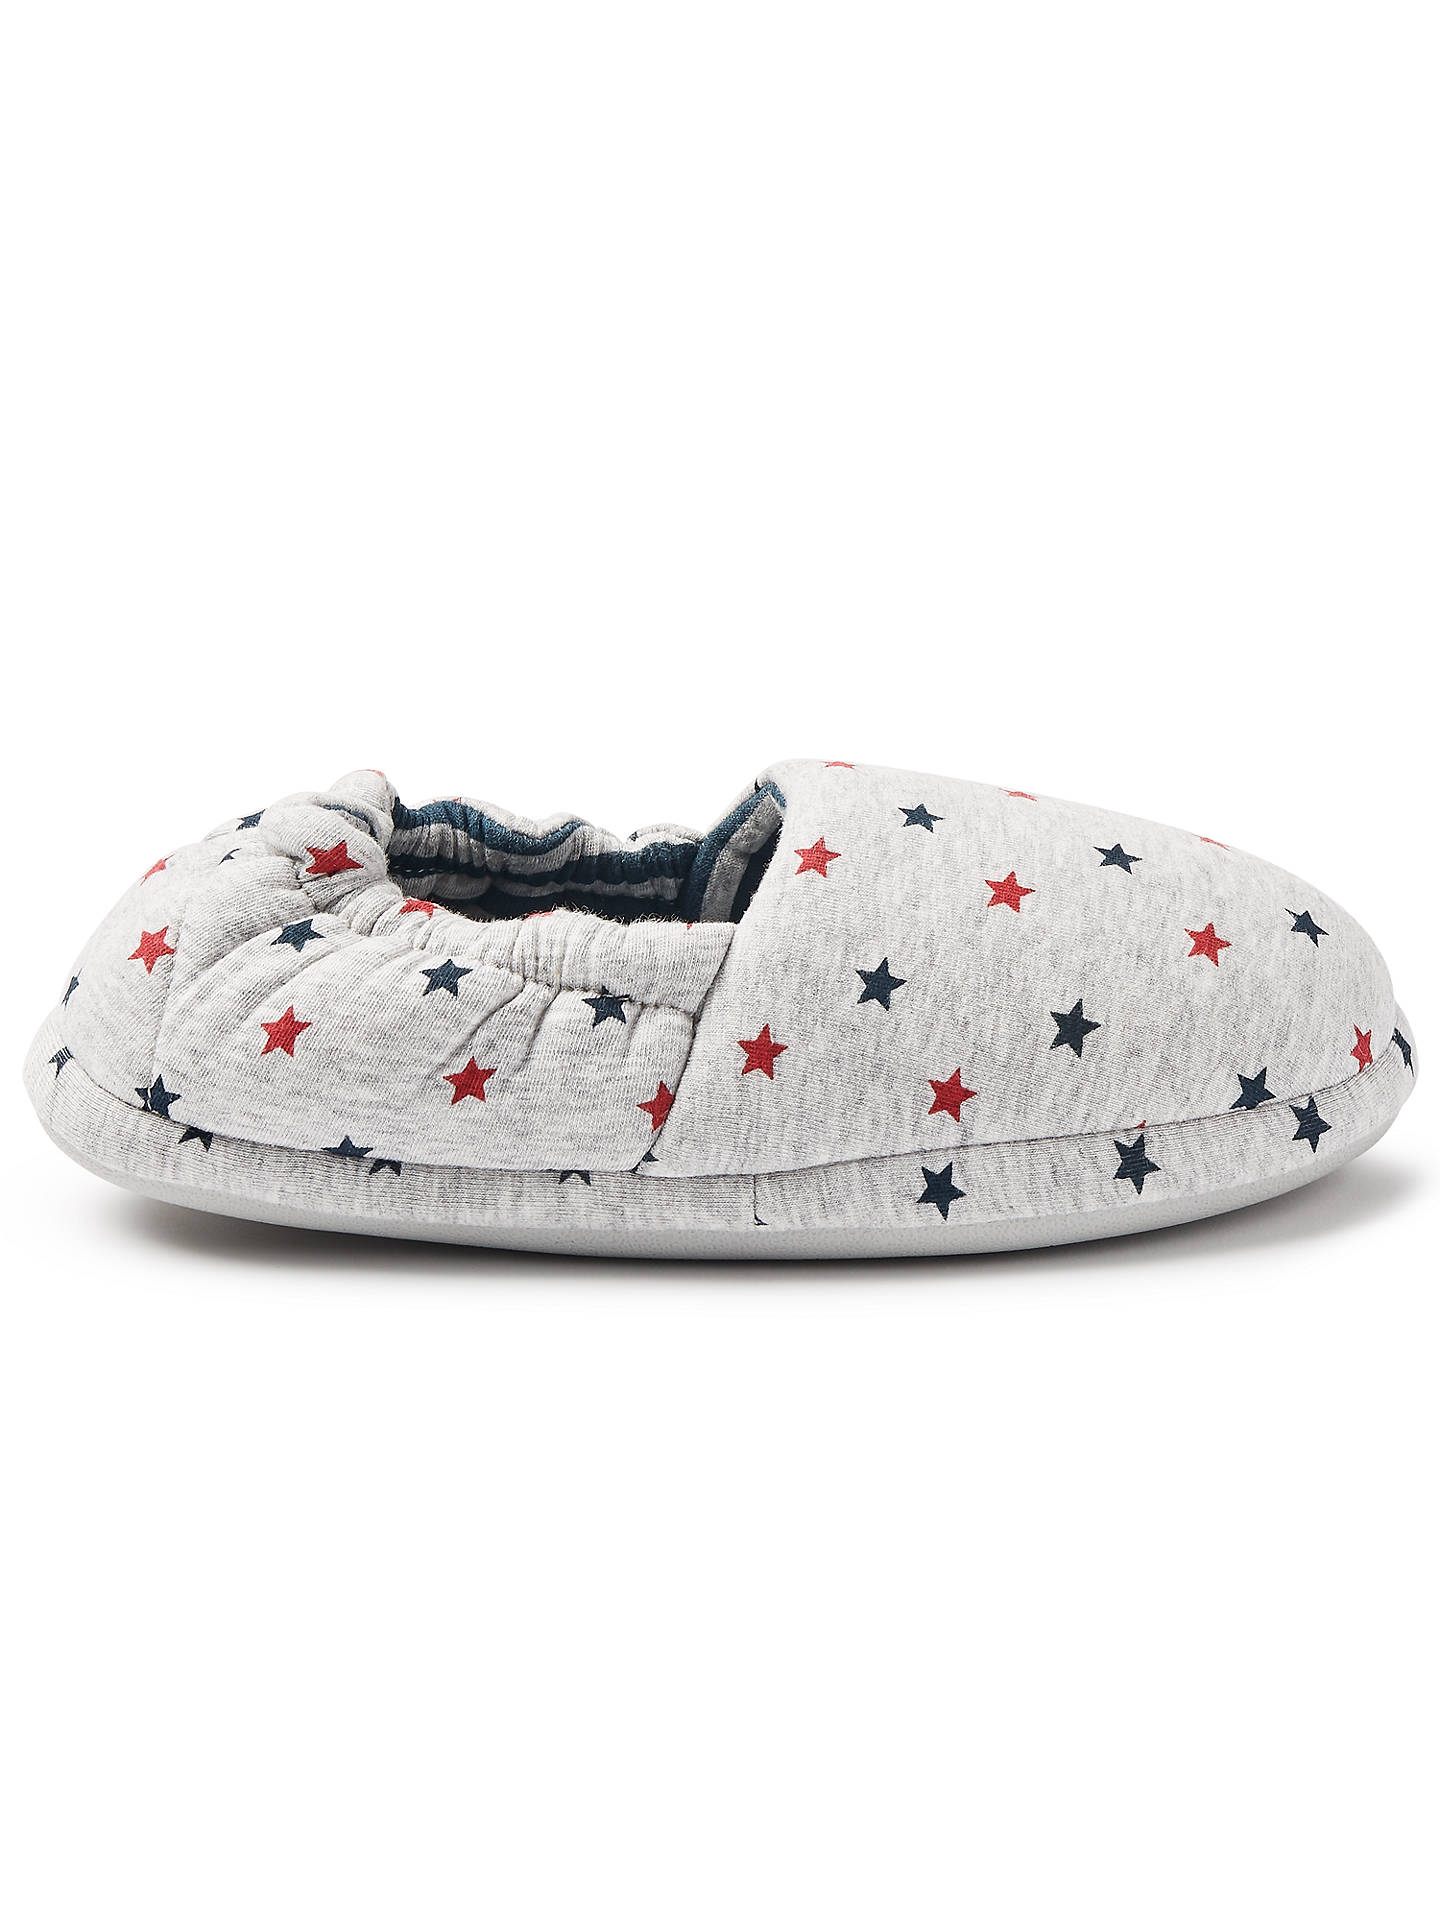 BuyJohn Lewis & Partners Children's Star and Stripes Slippers, Grey, 9 Jnr Online at johnlewis.com